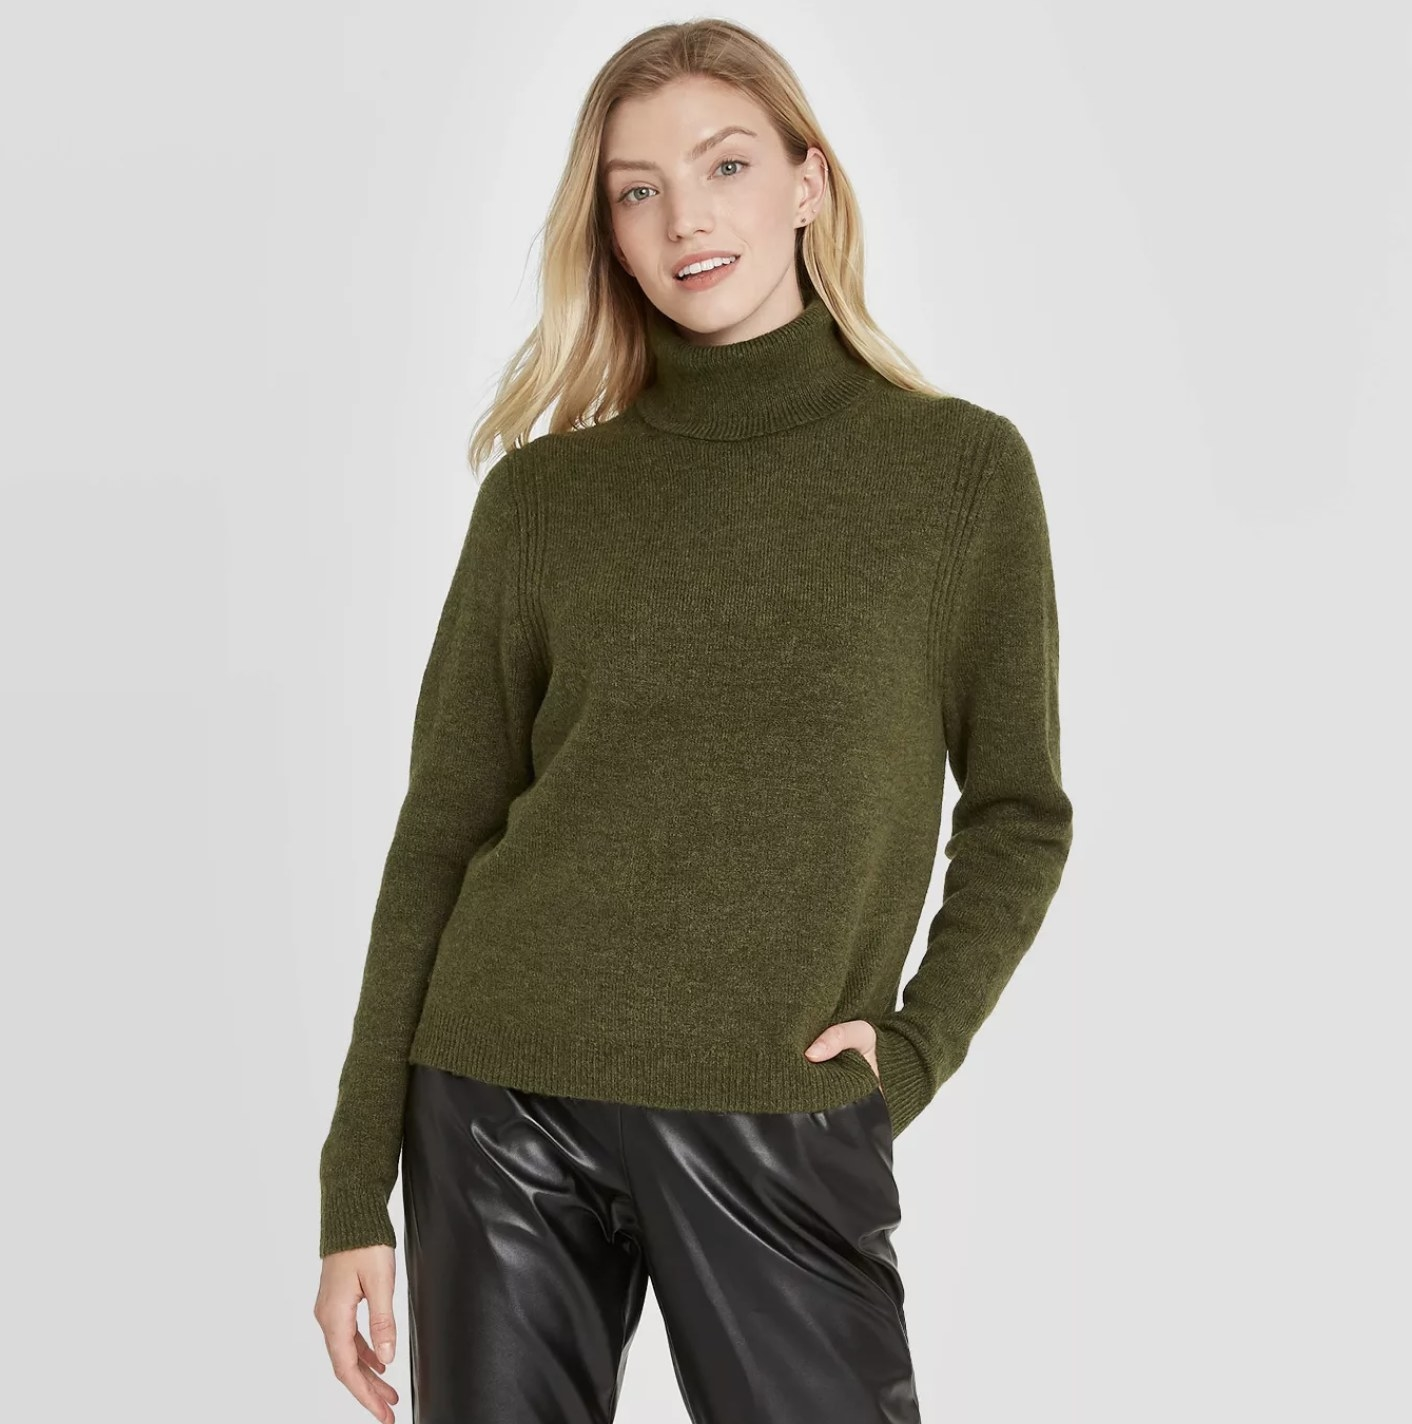 Model is wearing a forest green turtleneck pullover sweater